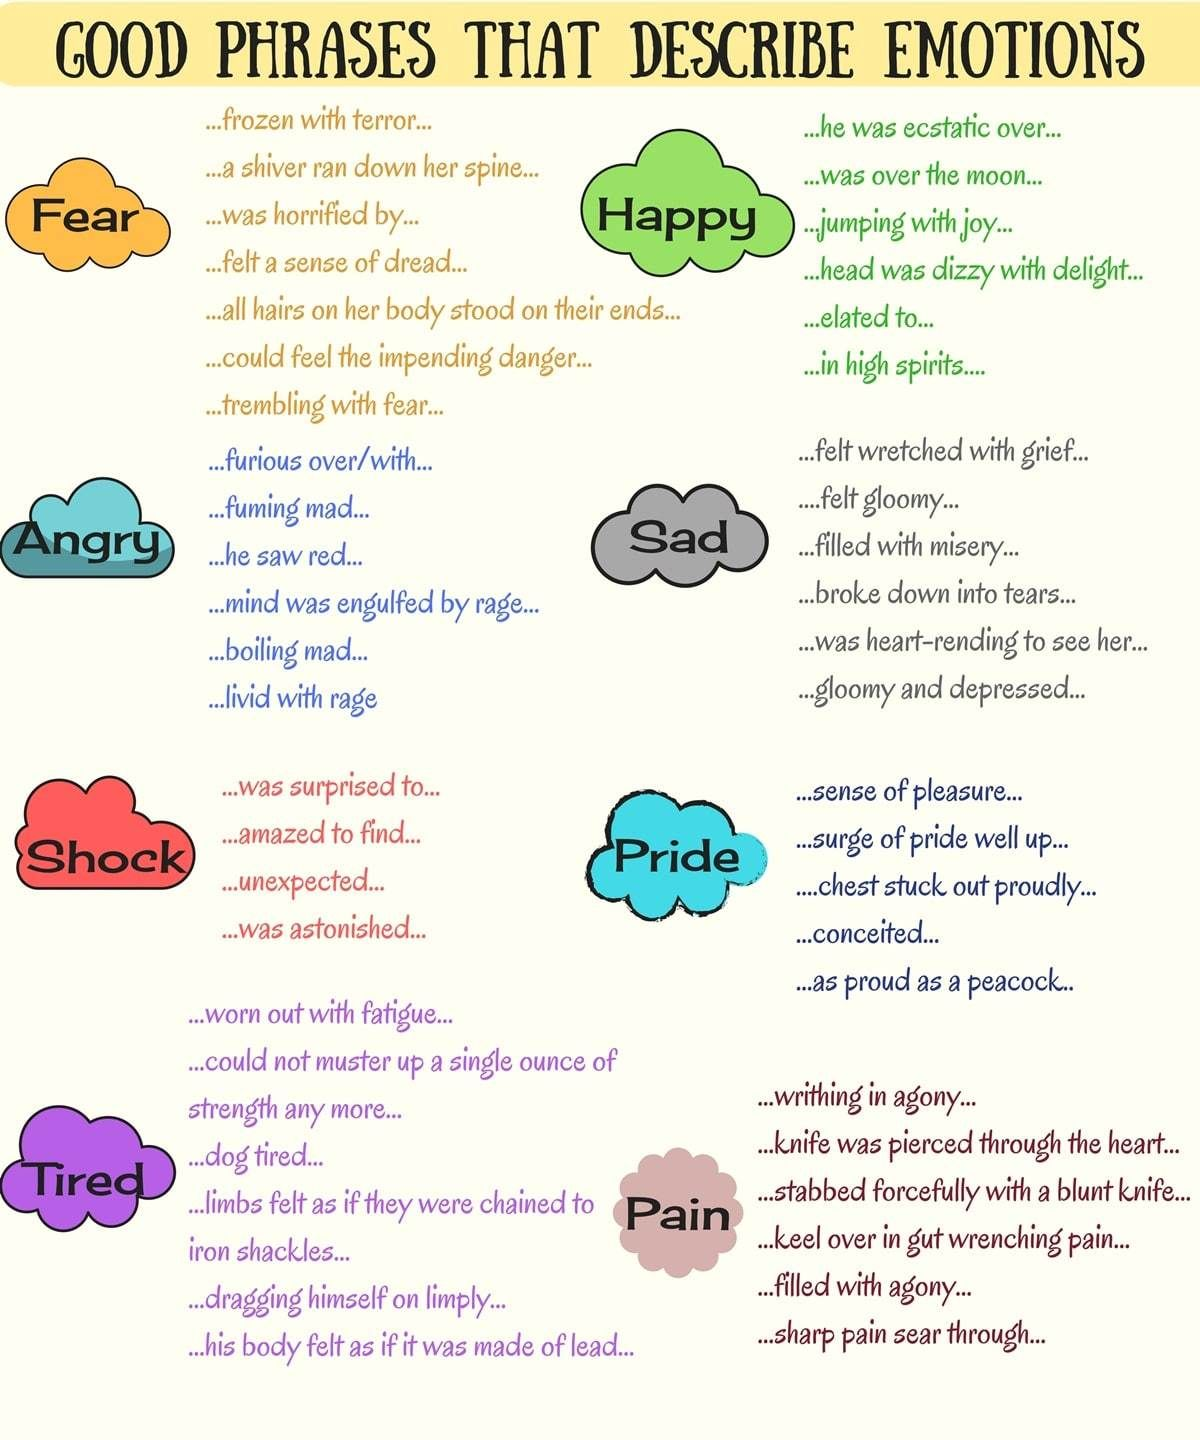 Good Phrases That Describe Emotions